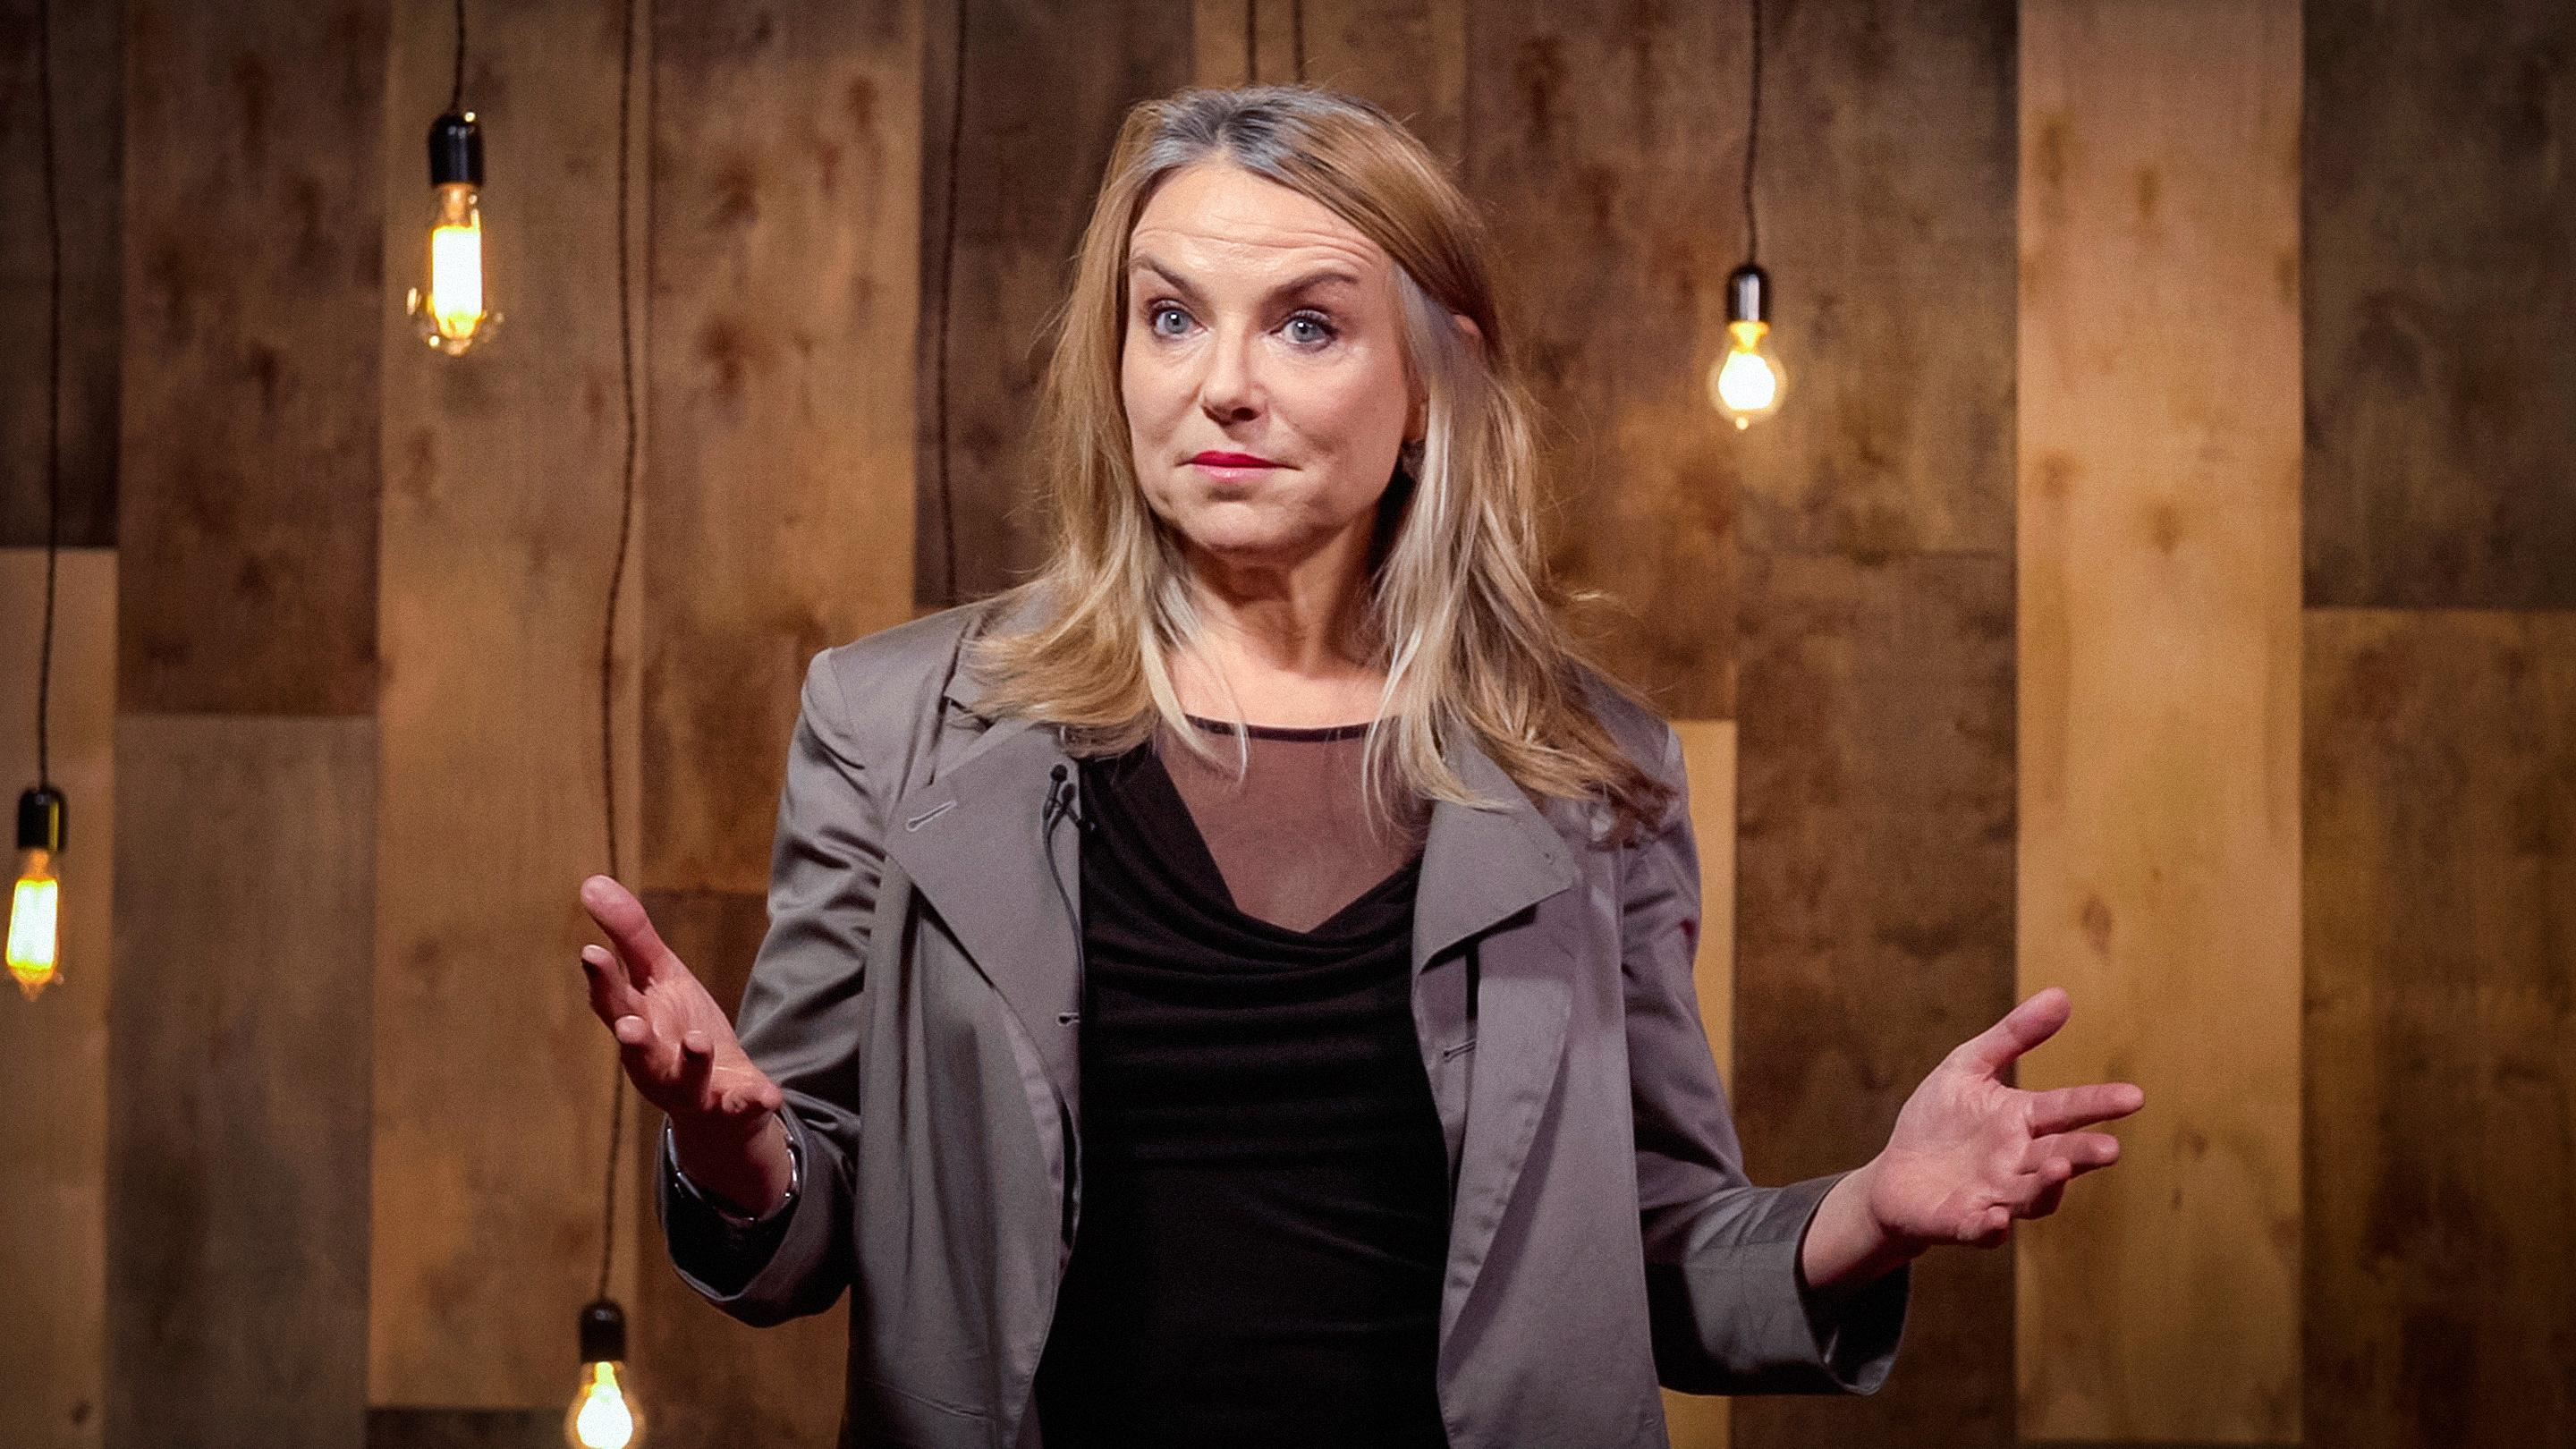 Esther perel tedtalk